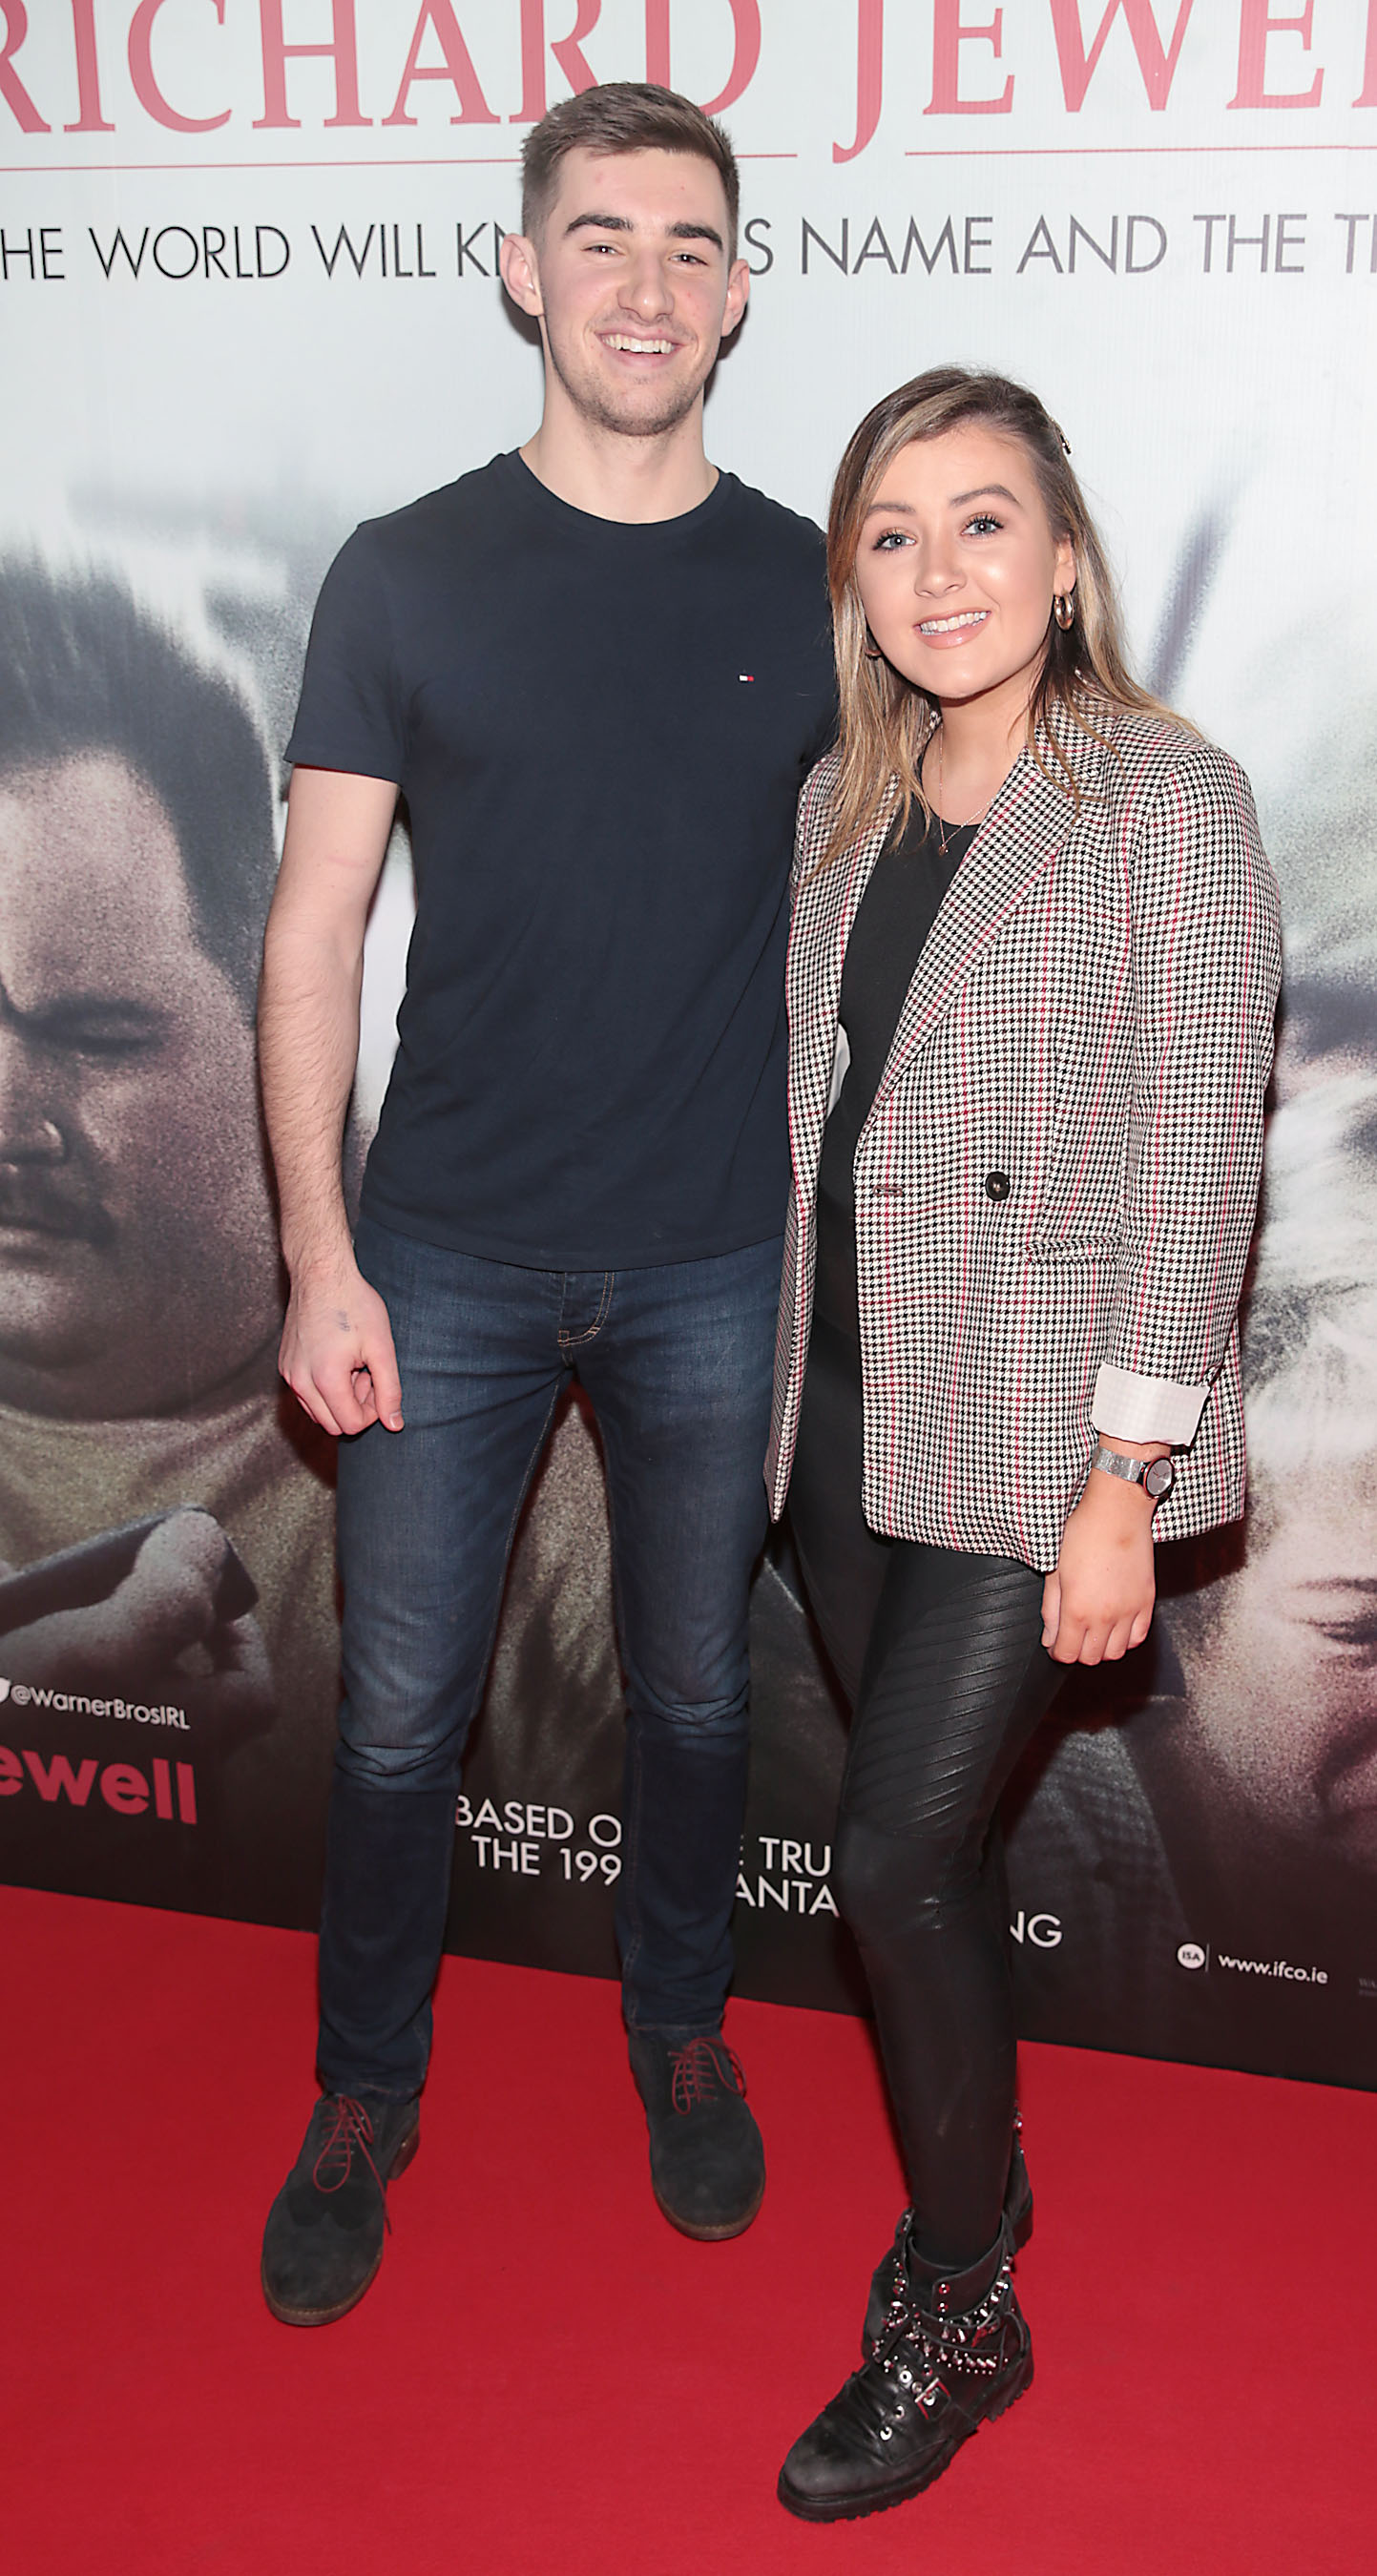 Peter Fagan and Niobh Farrell pictured at the special preview screening of Richard Jewell at Cineworld, Dublin. Pic: Brian McEvoy